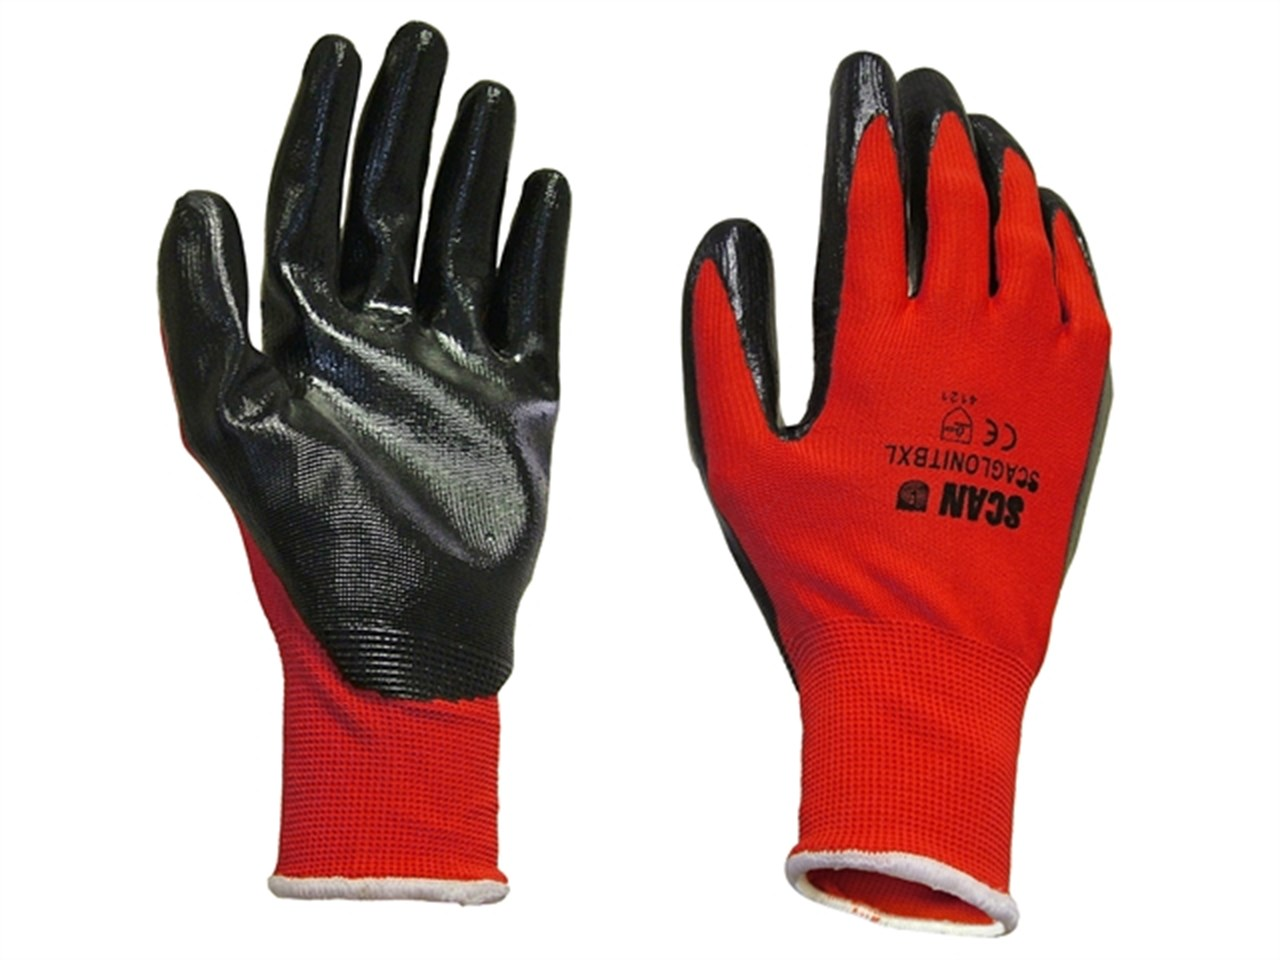 Scan Red Nitrile Gloves 13g Size10